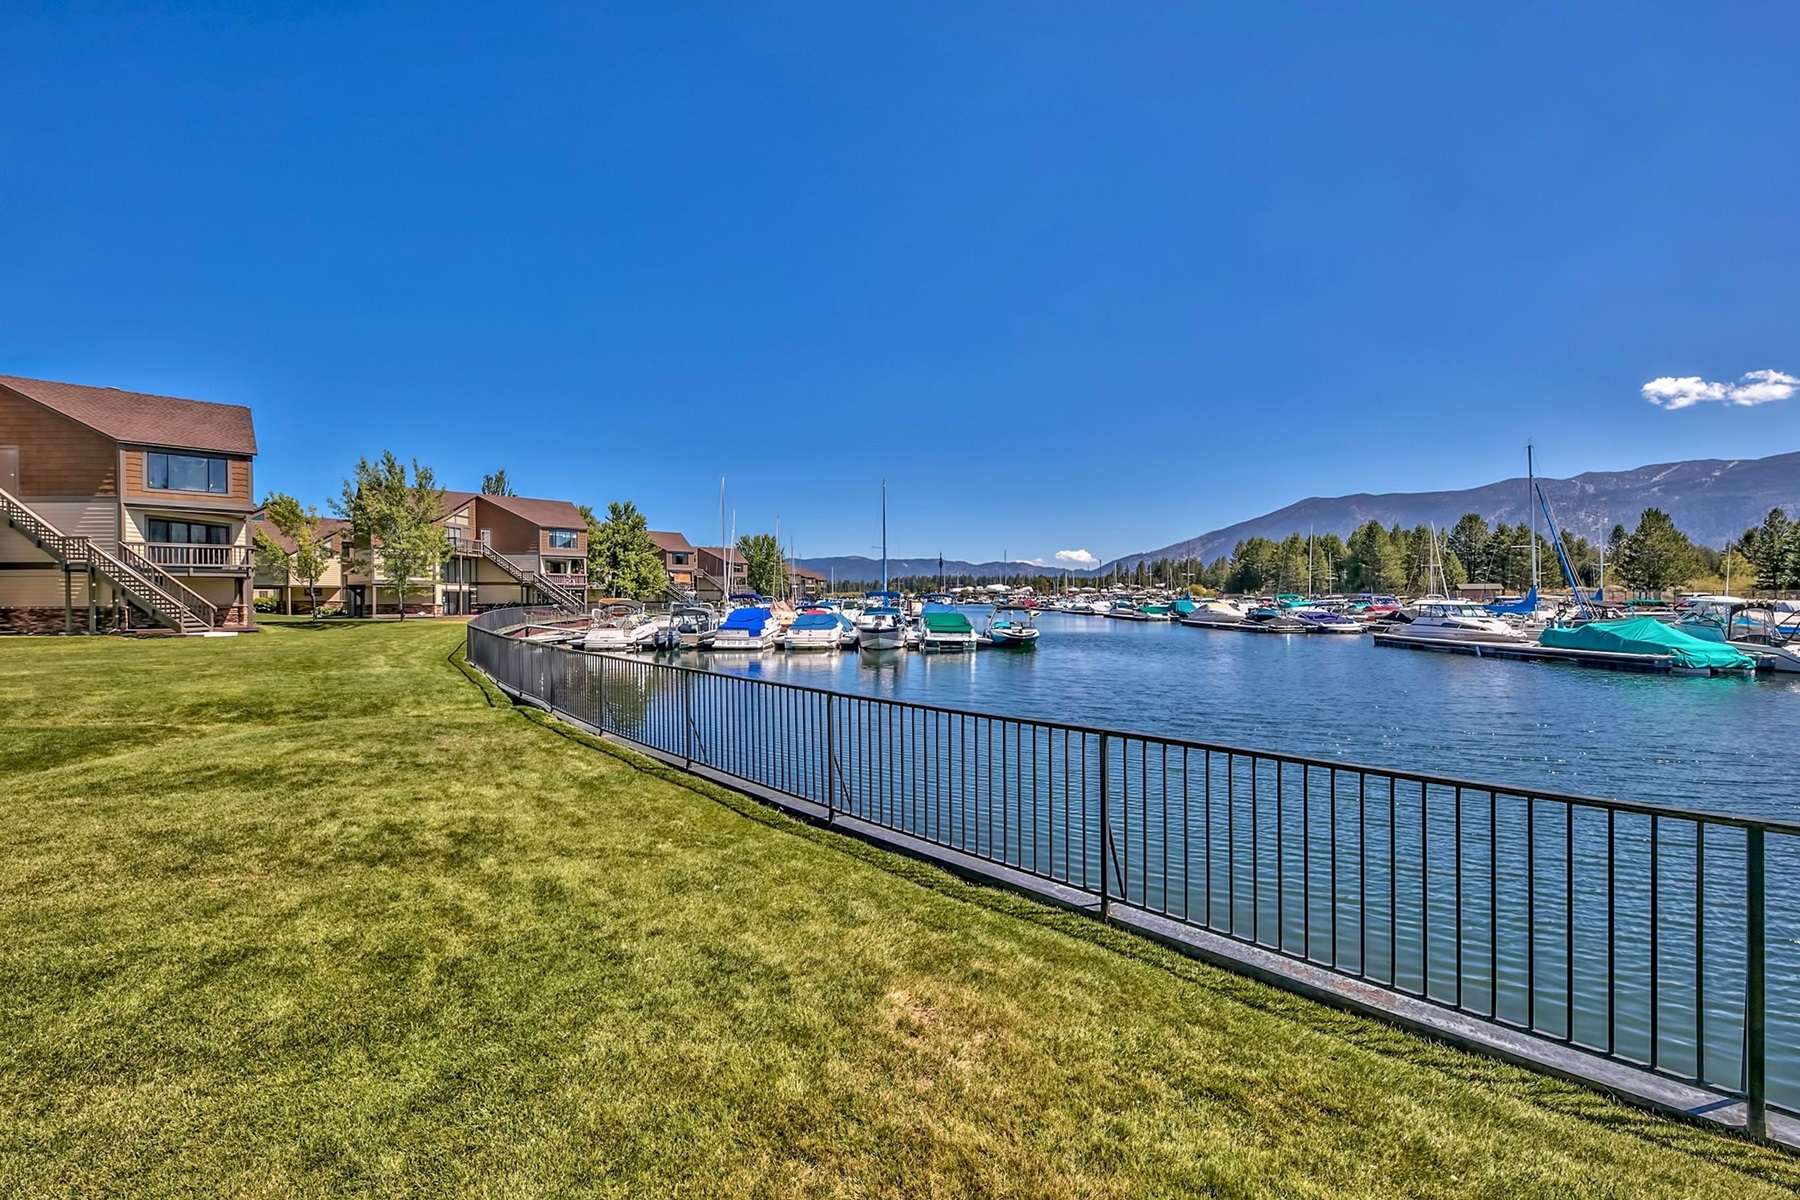 Additional photo for property listing at 555 Tahoe Keys Blvd. #13, South Lake Tahoe, CA 555 Tahoe Keys Blvd. #13 South Lake Tahoe, California 96150 United States